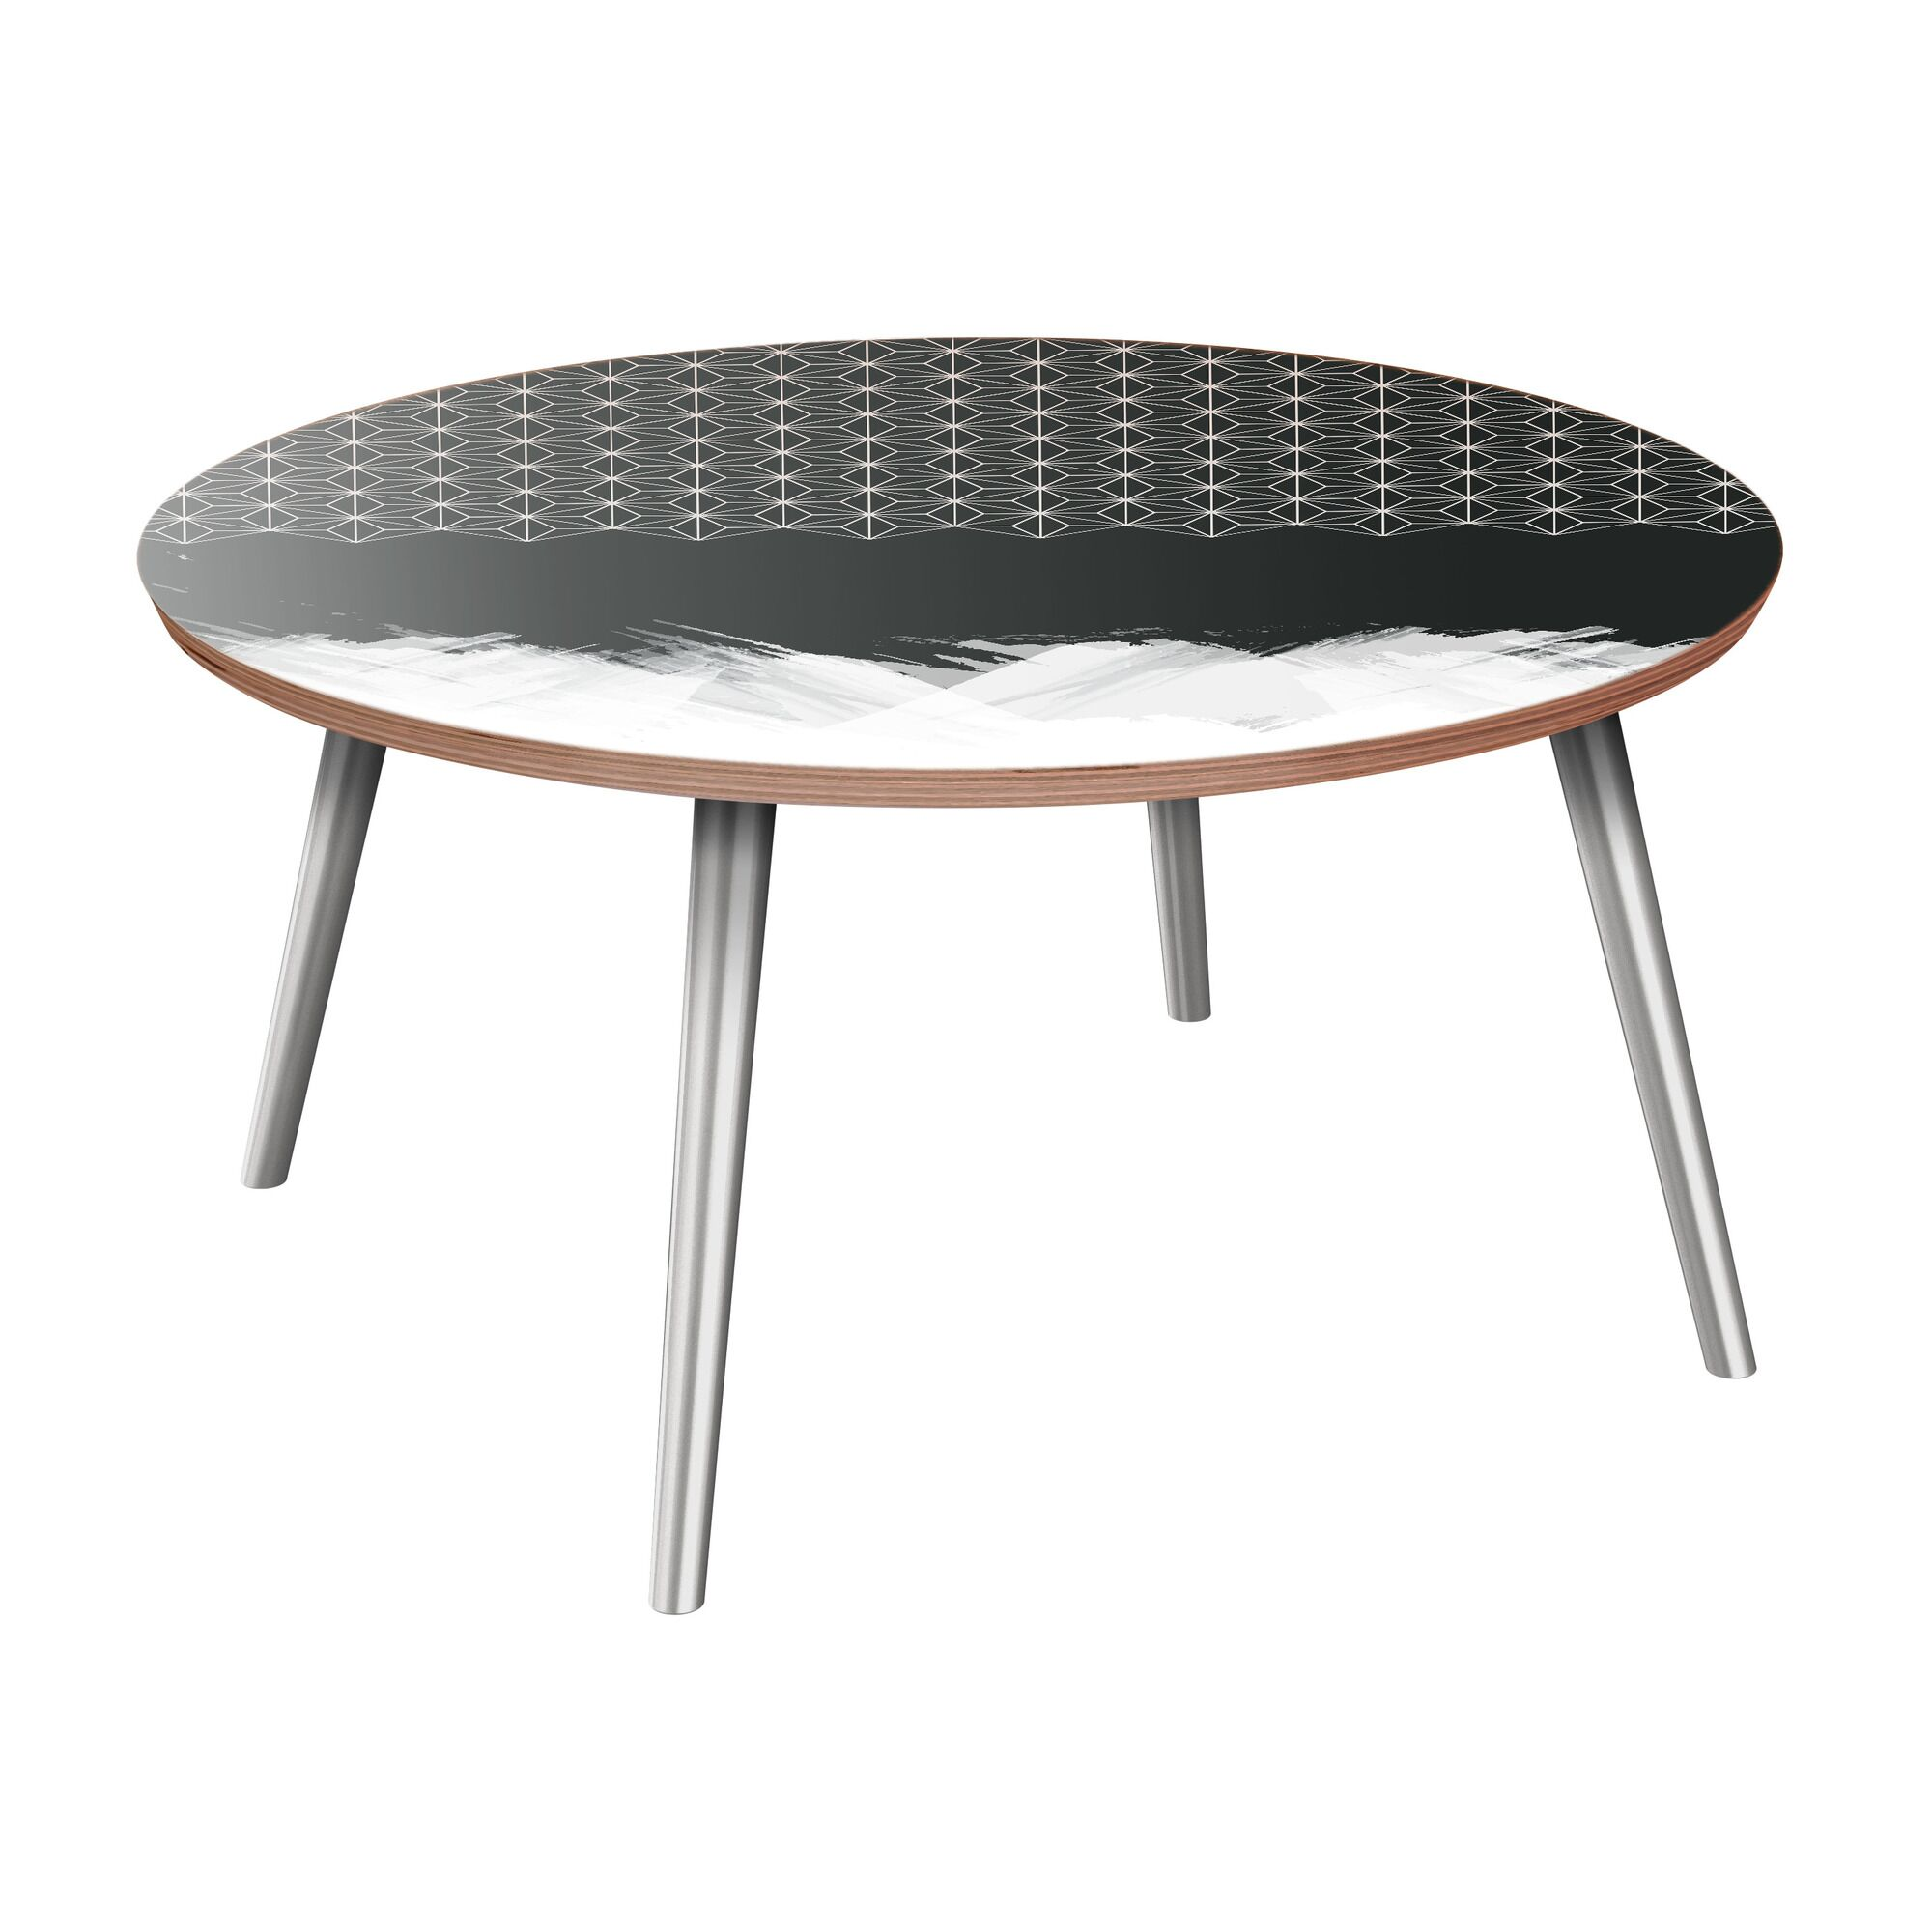 Evanoff Coffee Table Table Base Color: Chrome, Table Top Color: Walnut